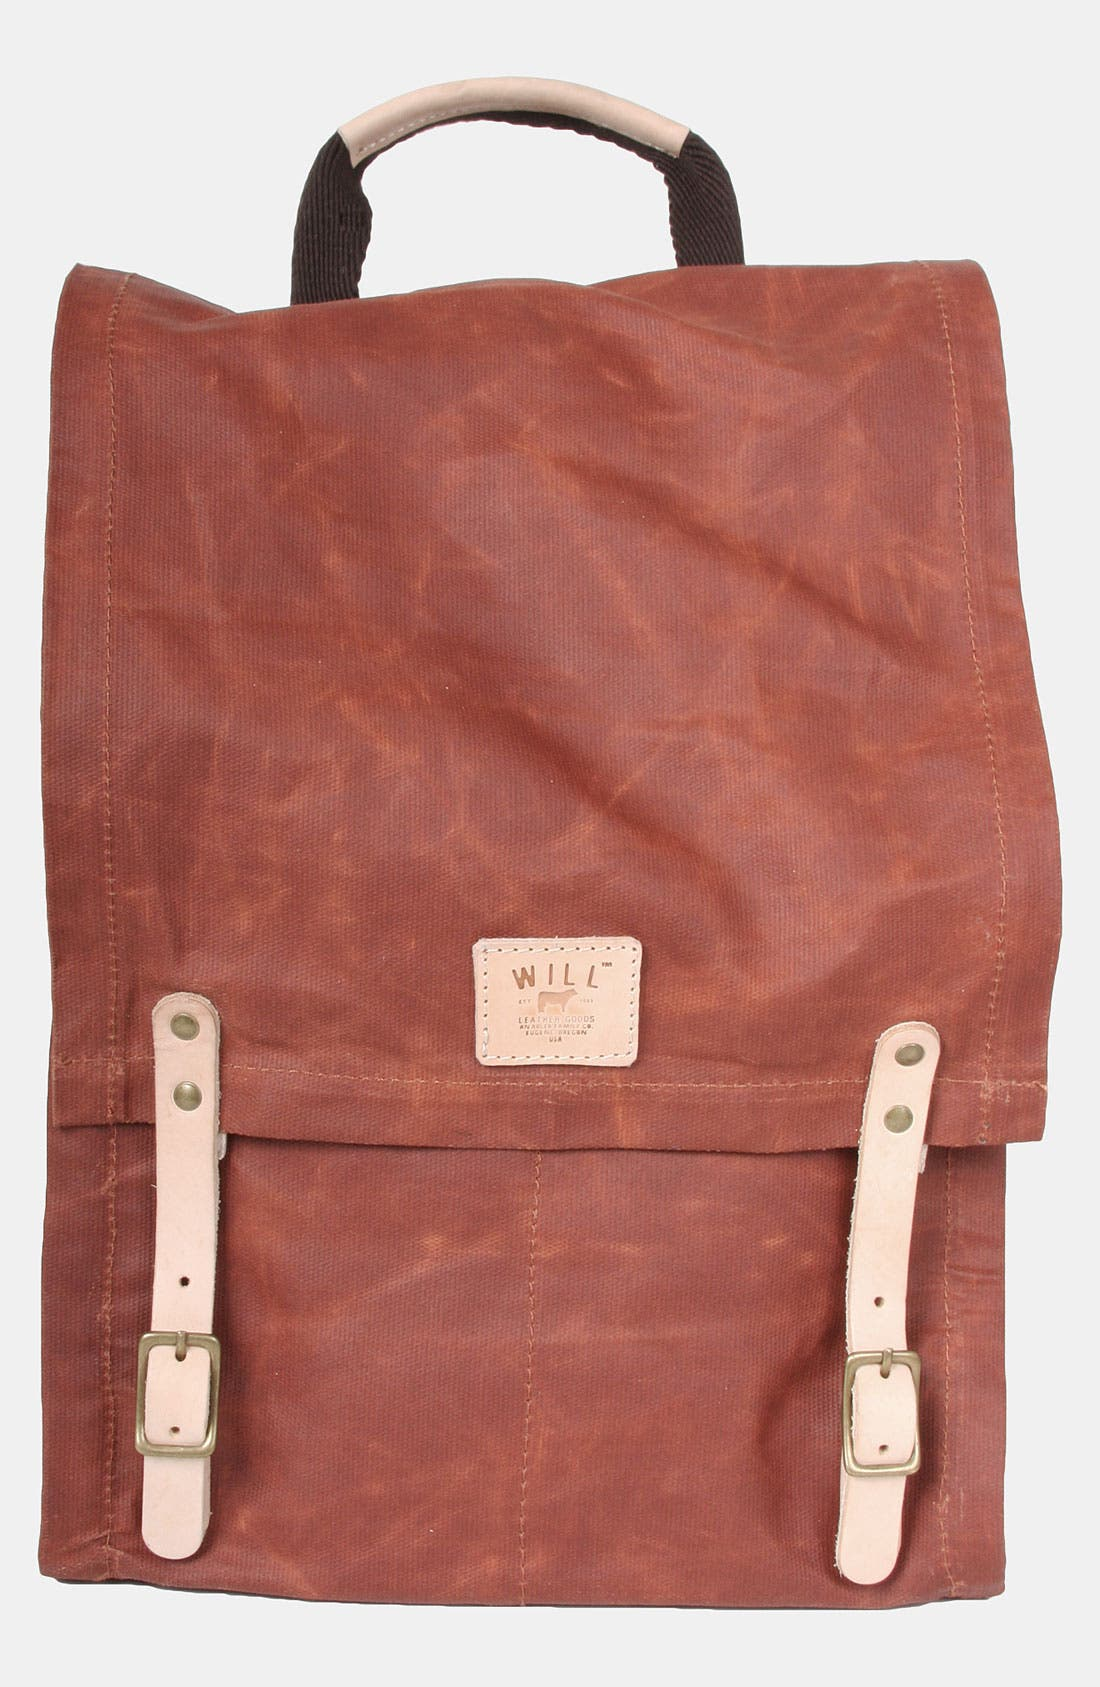 Main Image - Will Leather Goods Waxed Canvas Backpack